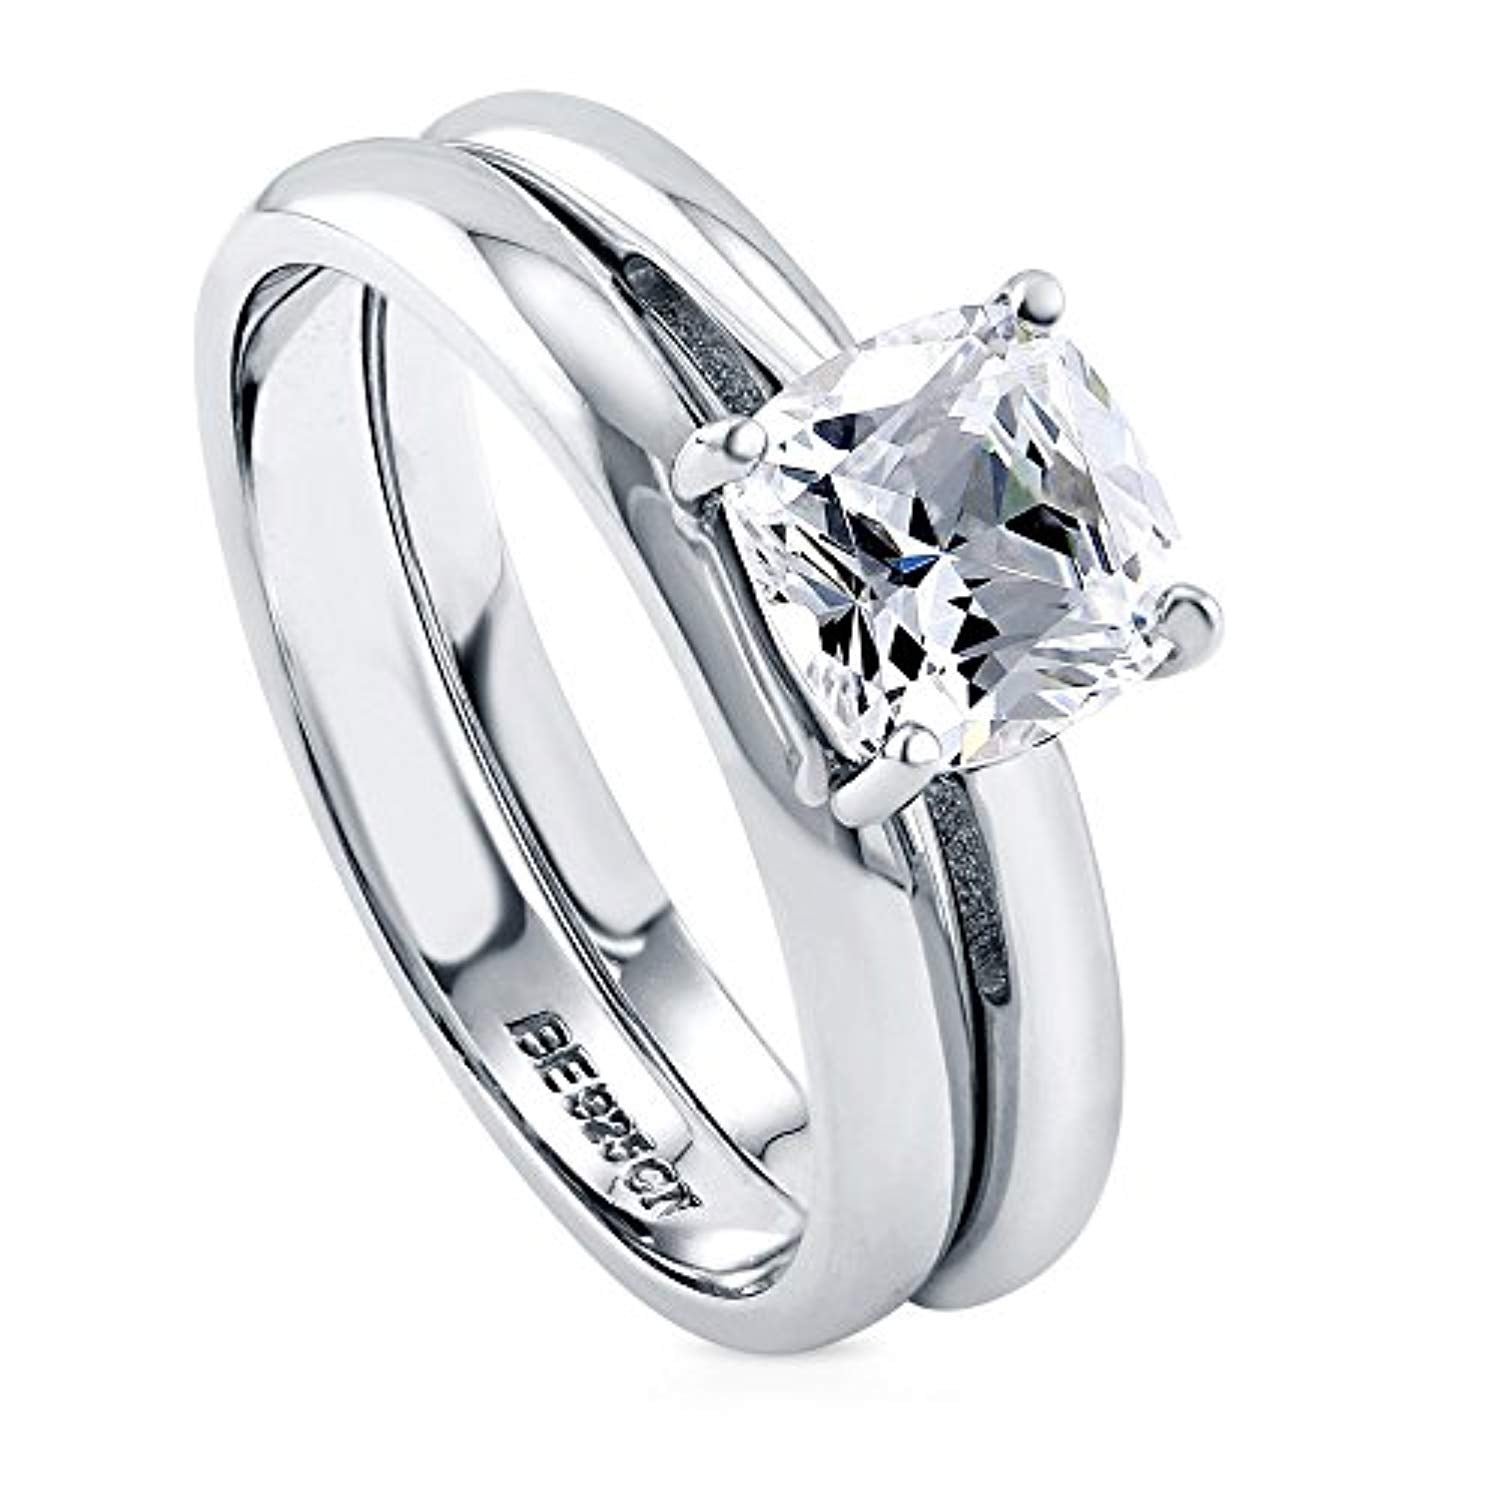 Rhodium Plated Sterling Silver Cushion Cut Cubic Zirconia CZ Solitaire Engagement Wedding Ring Set